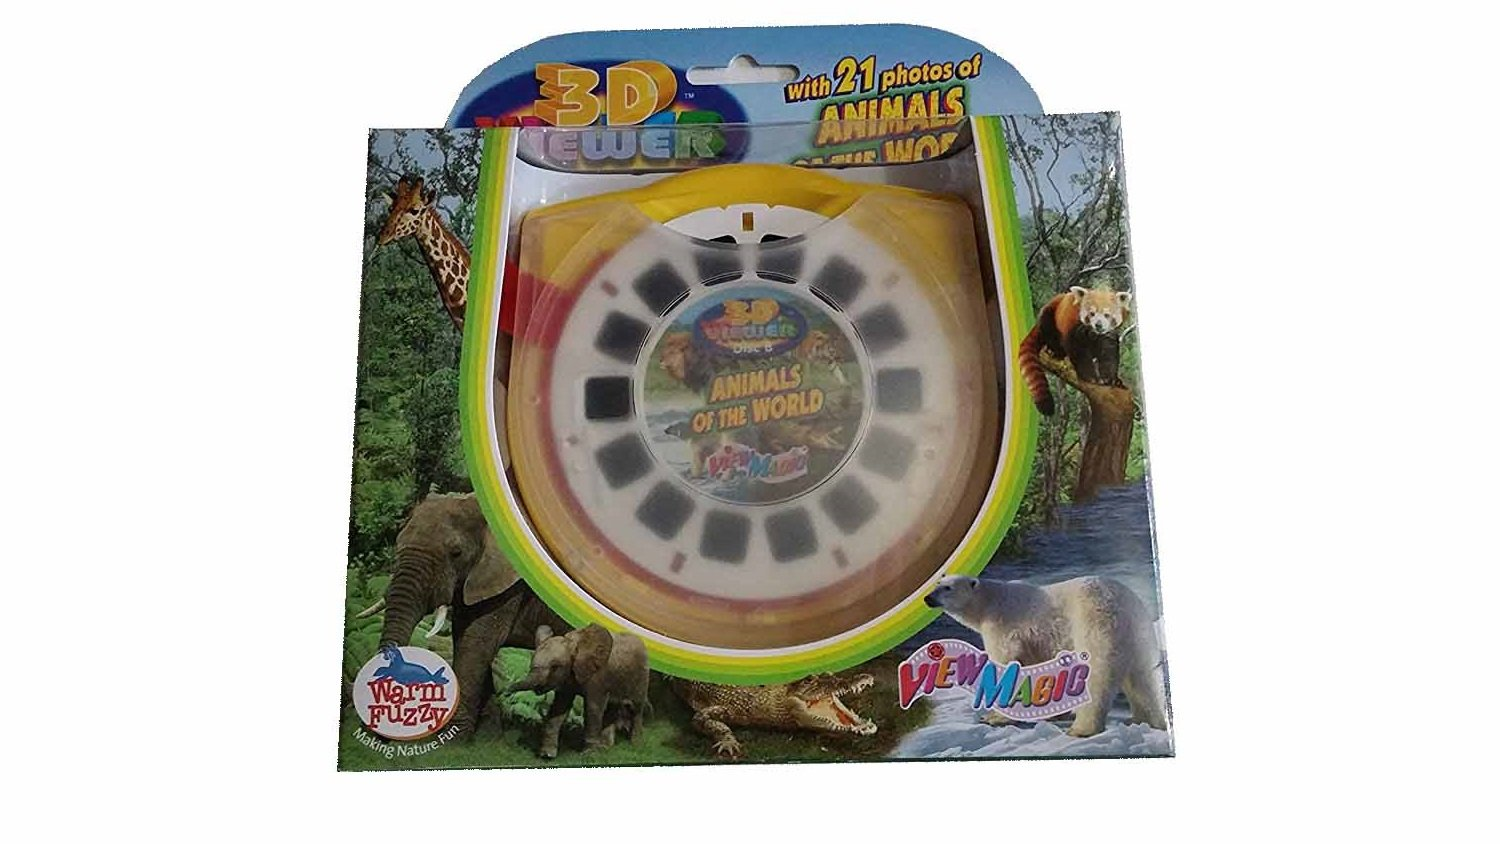 21 Animals of the world 3D Viewer, View master, 3 interchangeable discs